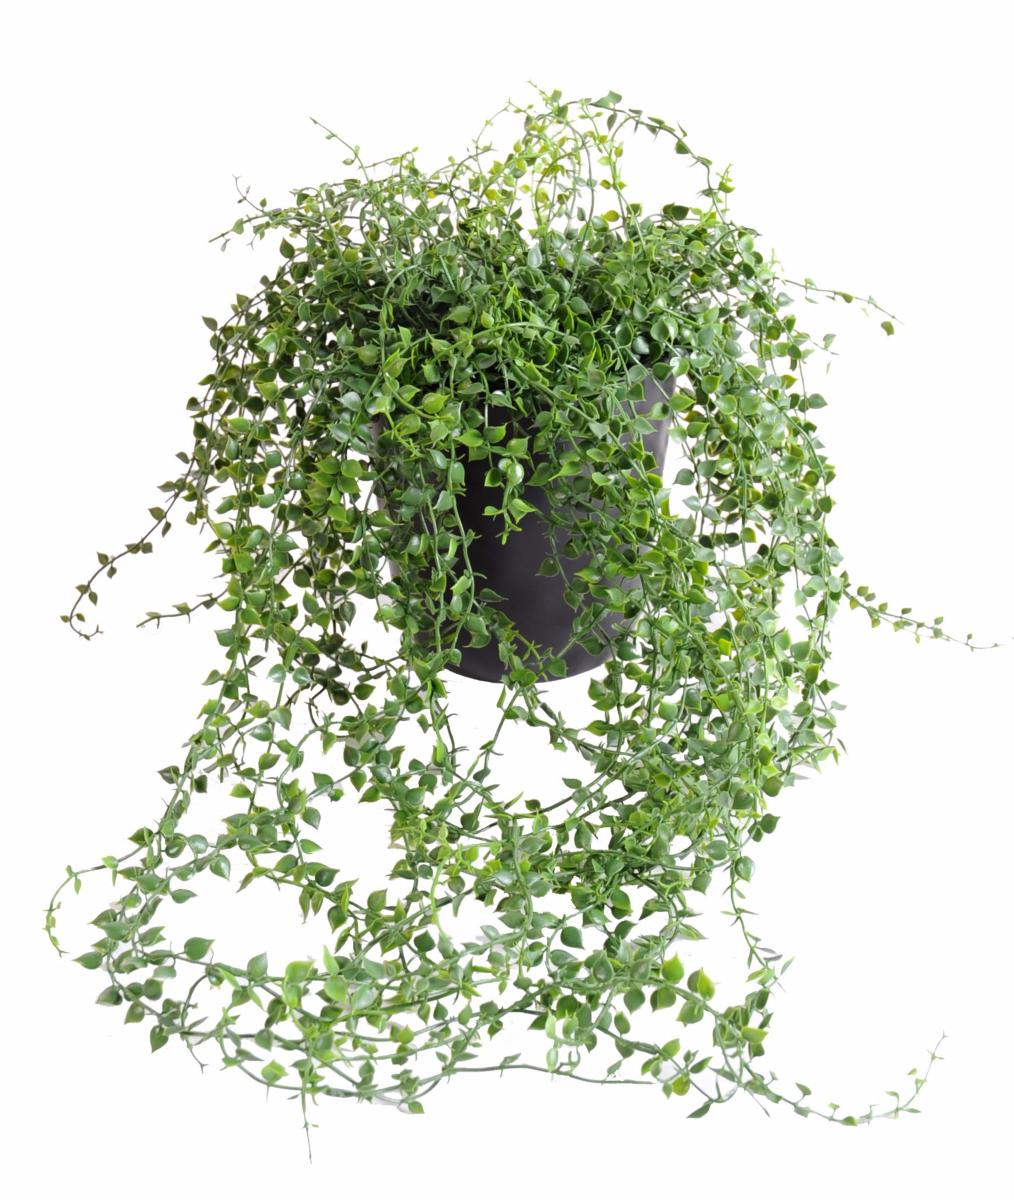 Plante artificielle callisia en pot interieur exterieur for Plante verte tombante interieur